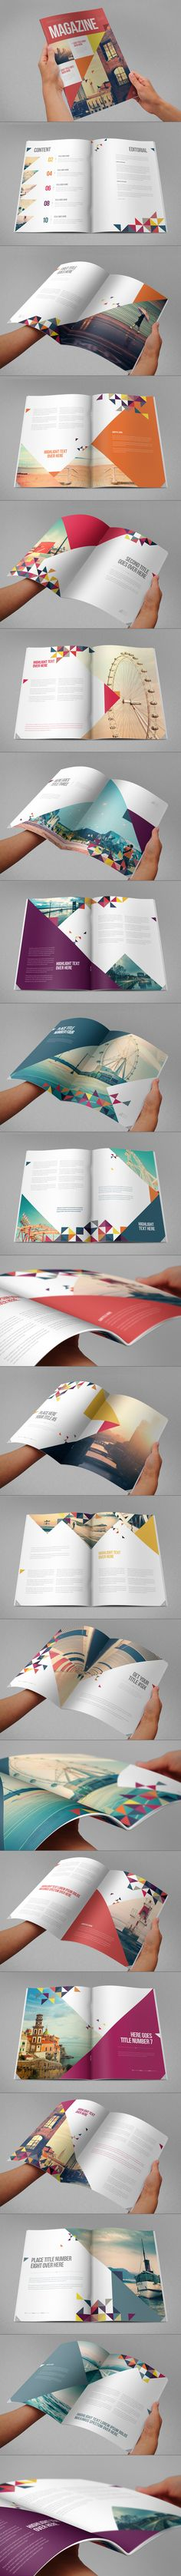 Modern Triangles Magazine by Abra Design #layout #design #graphicdesign